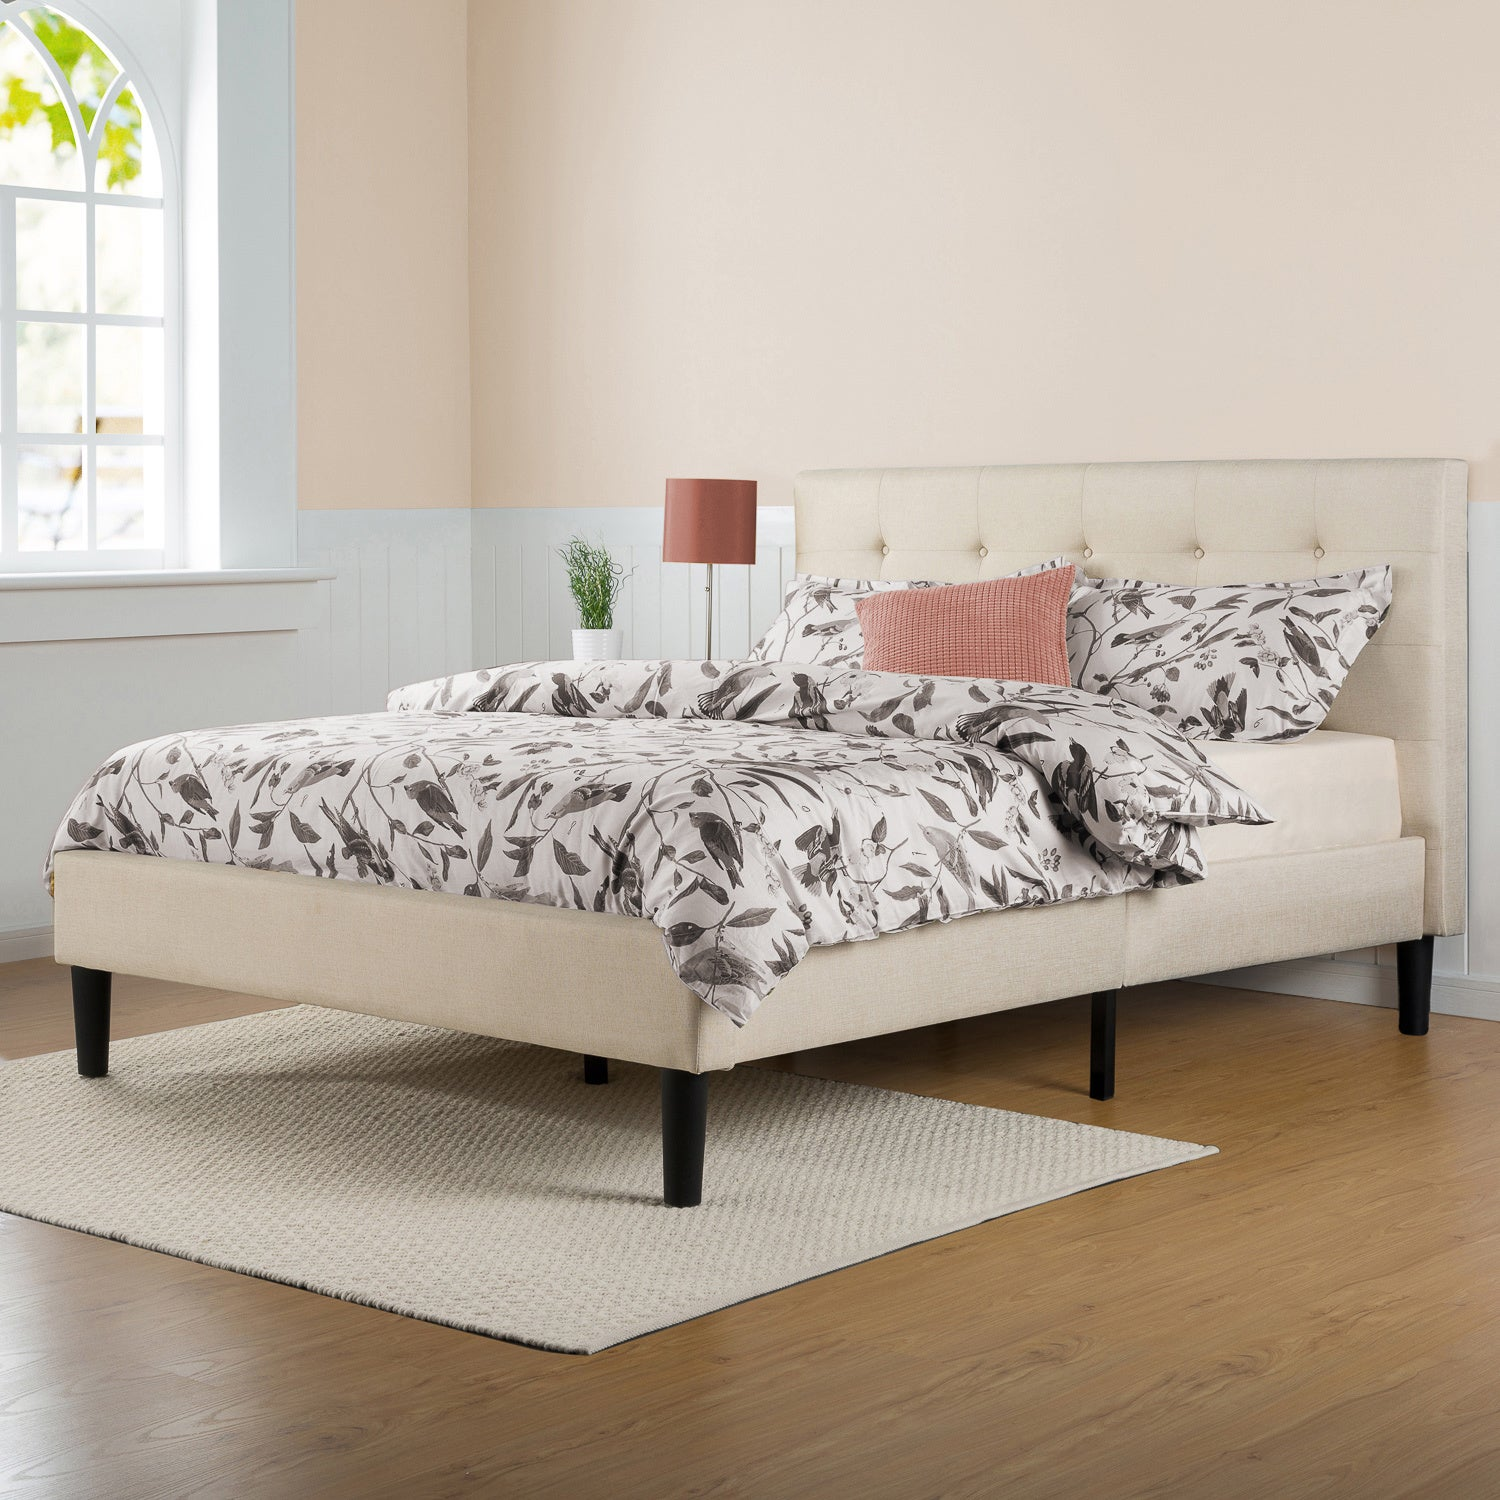 Priage Upholstered Button Tufted Platform Bed with Wooden...